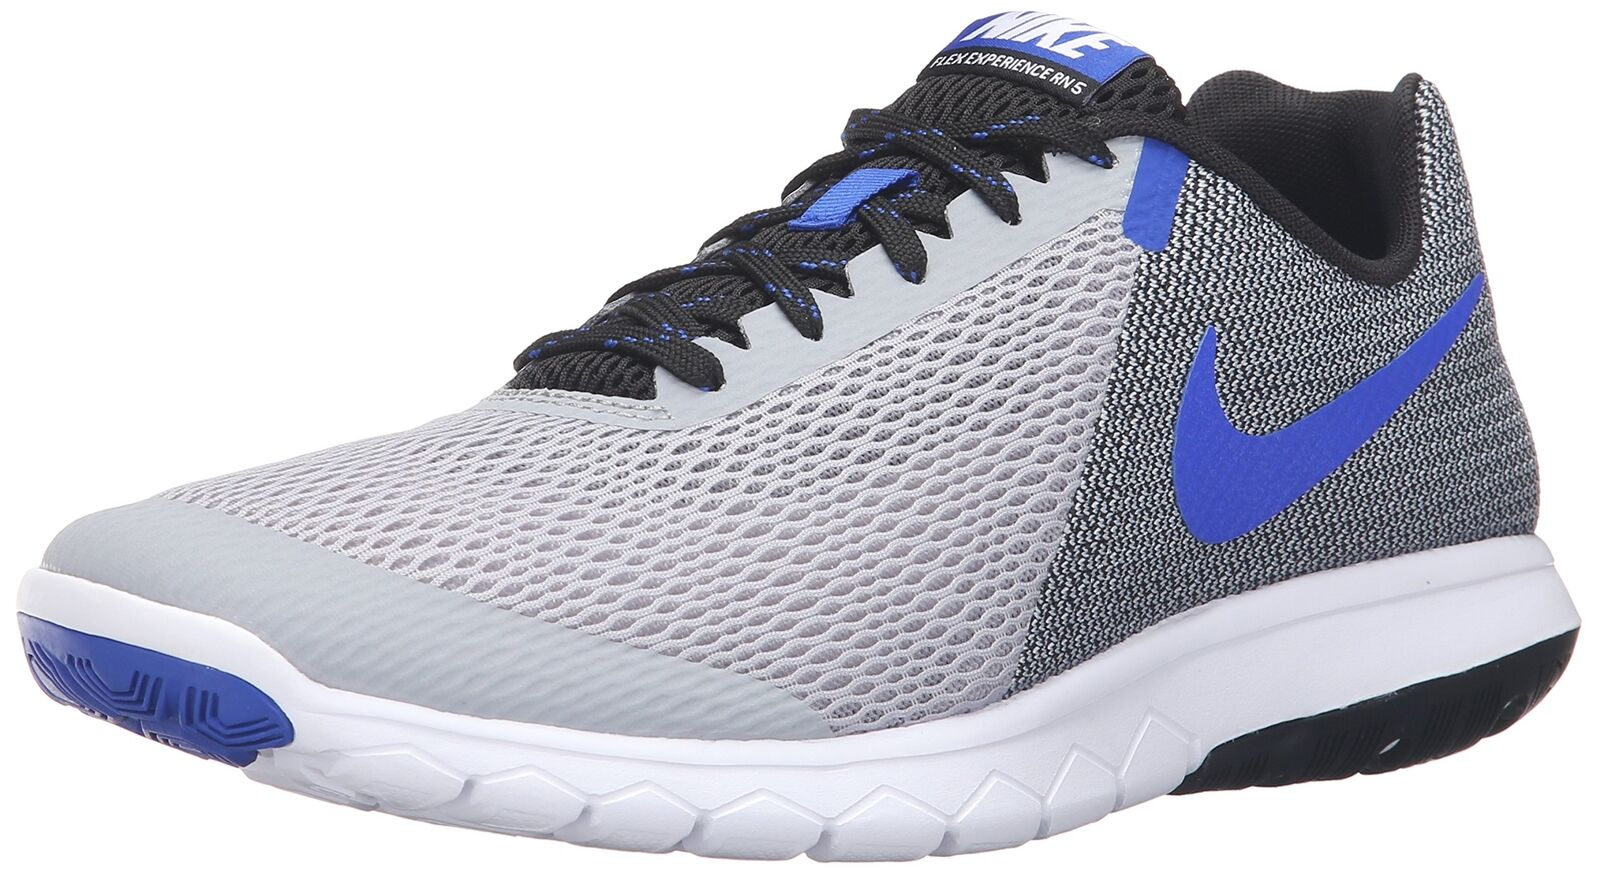 Nike Flex Experience RN 5 Running shoes Wolf Grey Racer bluee Black Whi 13